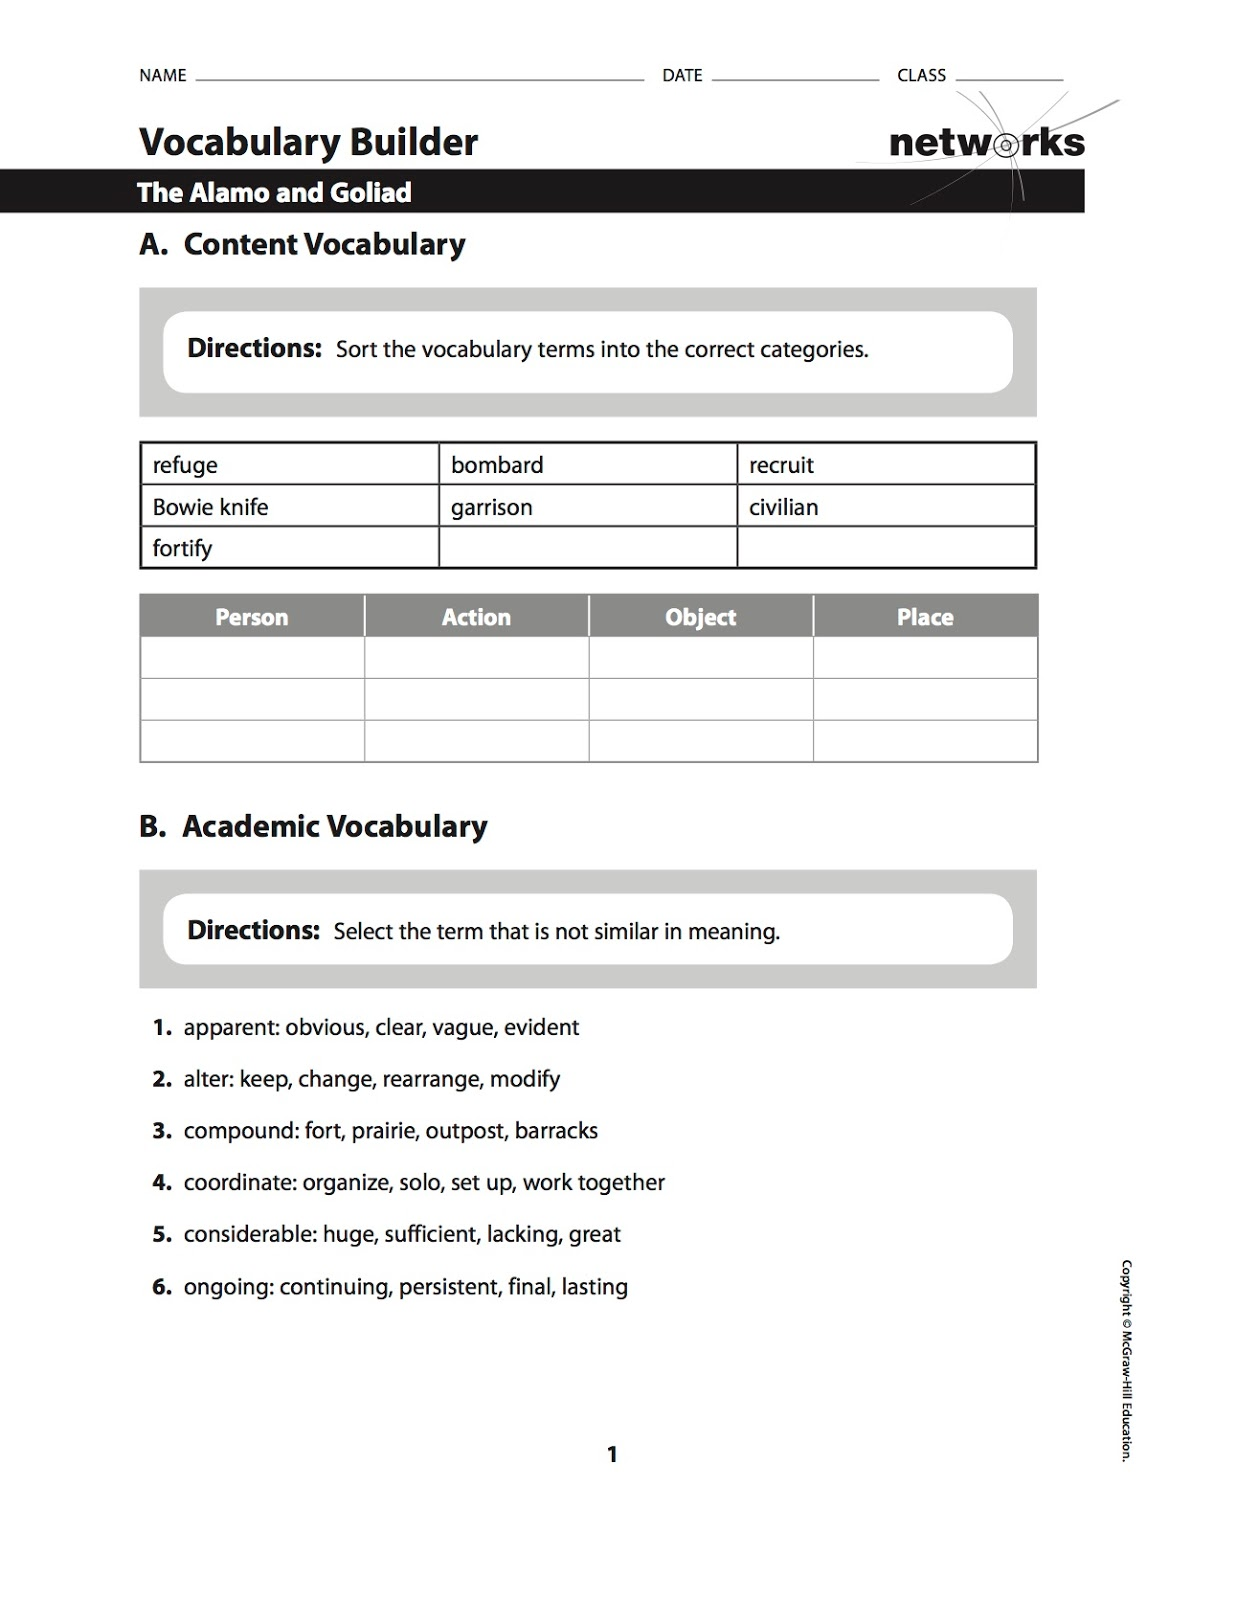 Worksheet guided reading worksheets grass fedjp for Ohio department of education lesson plan template